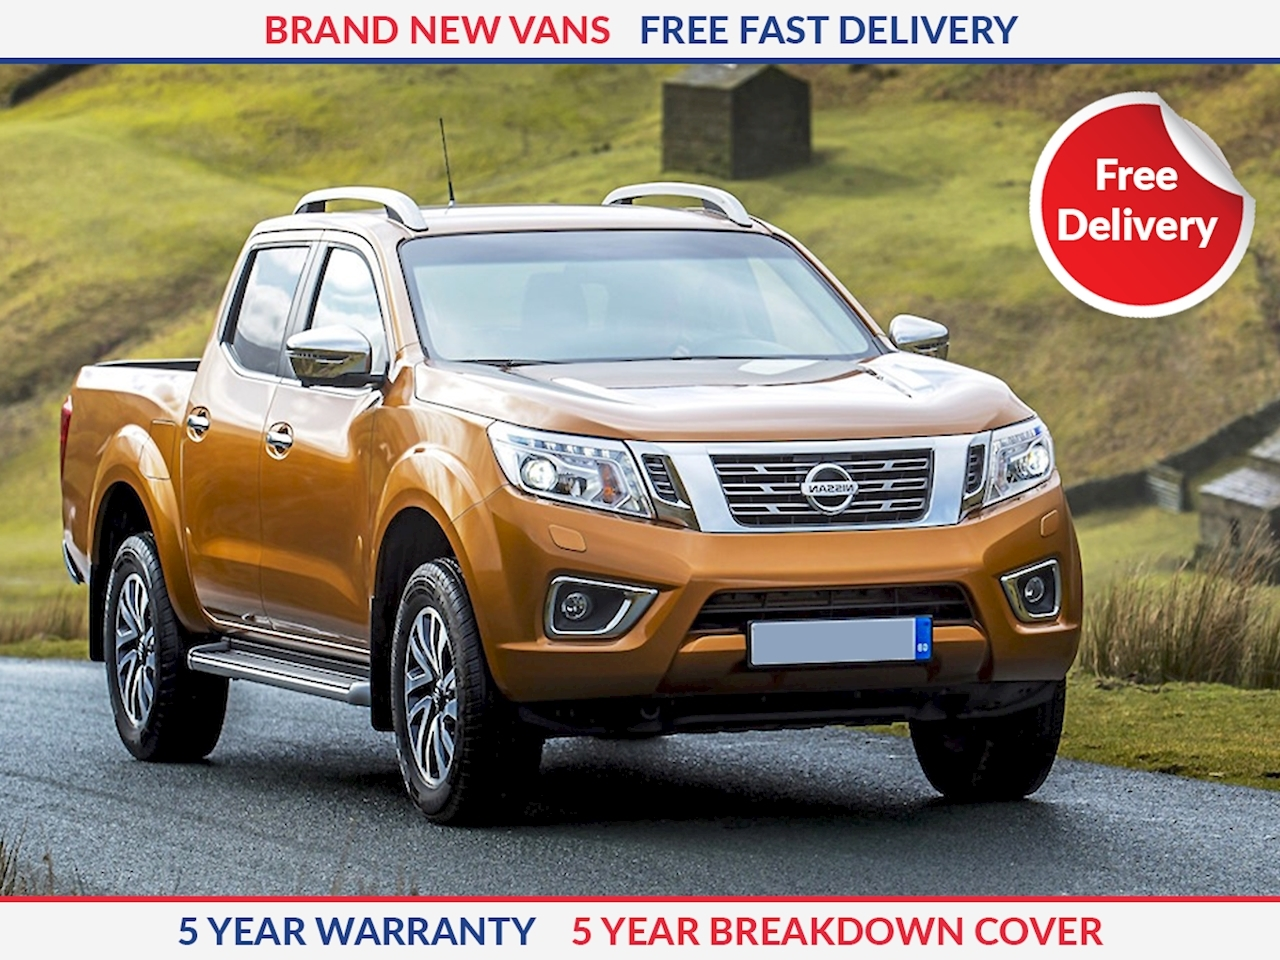 Nissan Navara Acenta+ Double Cab 2.3 dCi Twin Turbo 190ps 4WD 4x4 Automatic